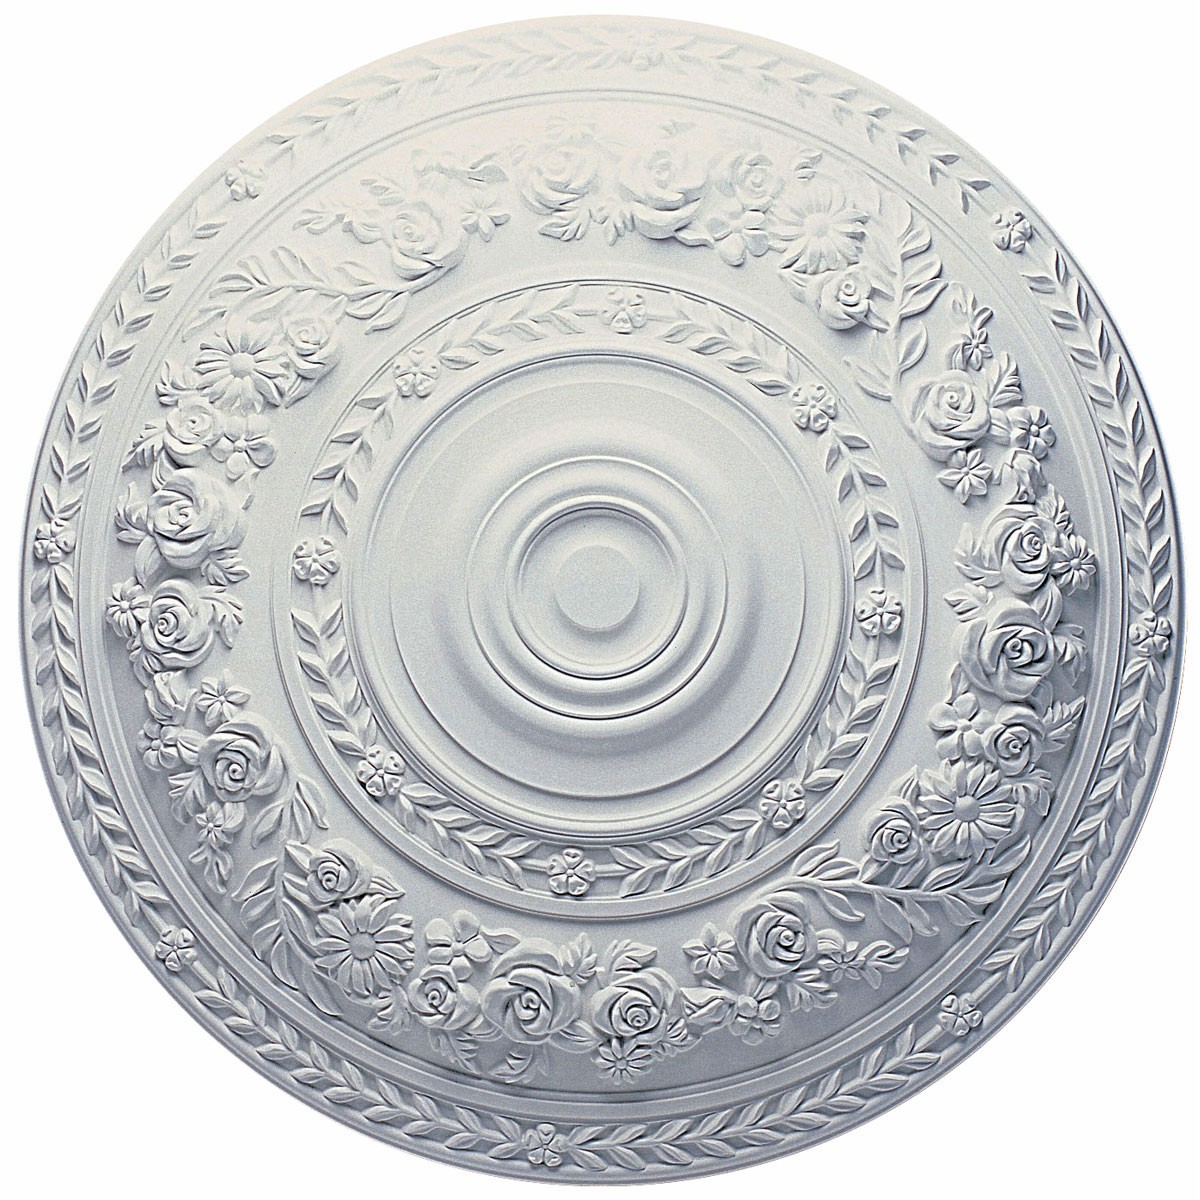 """EM-CM33RO - 33 7/8""""OD x 2 3/8""""P Rose Ceiling Medallion (Fits Canopies up to 13 1/2"""")"""